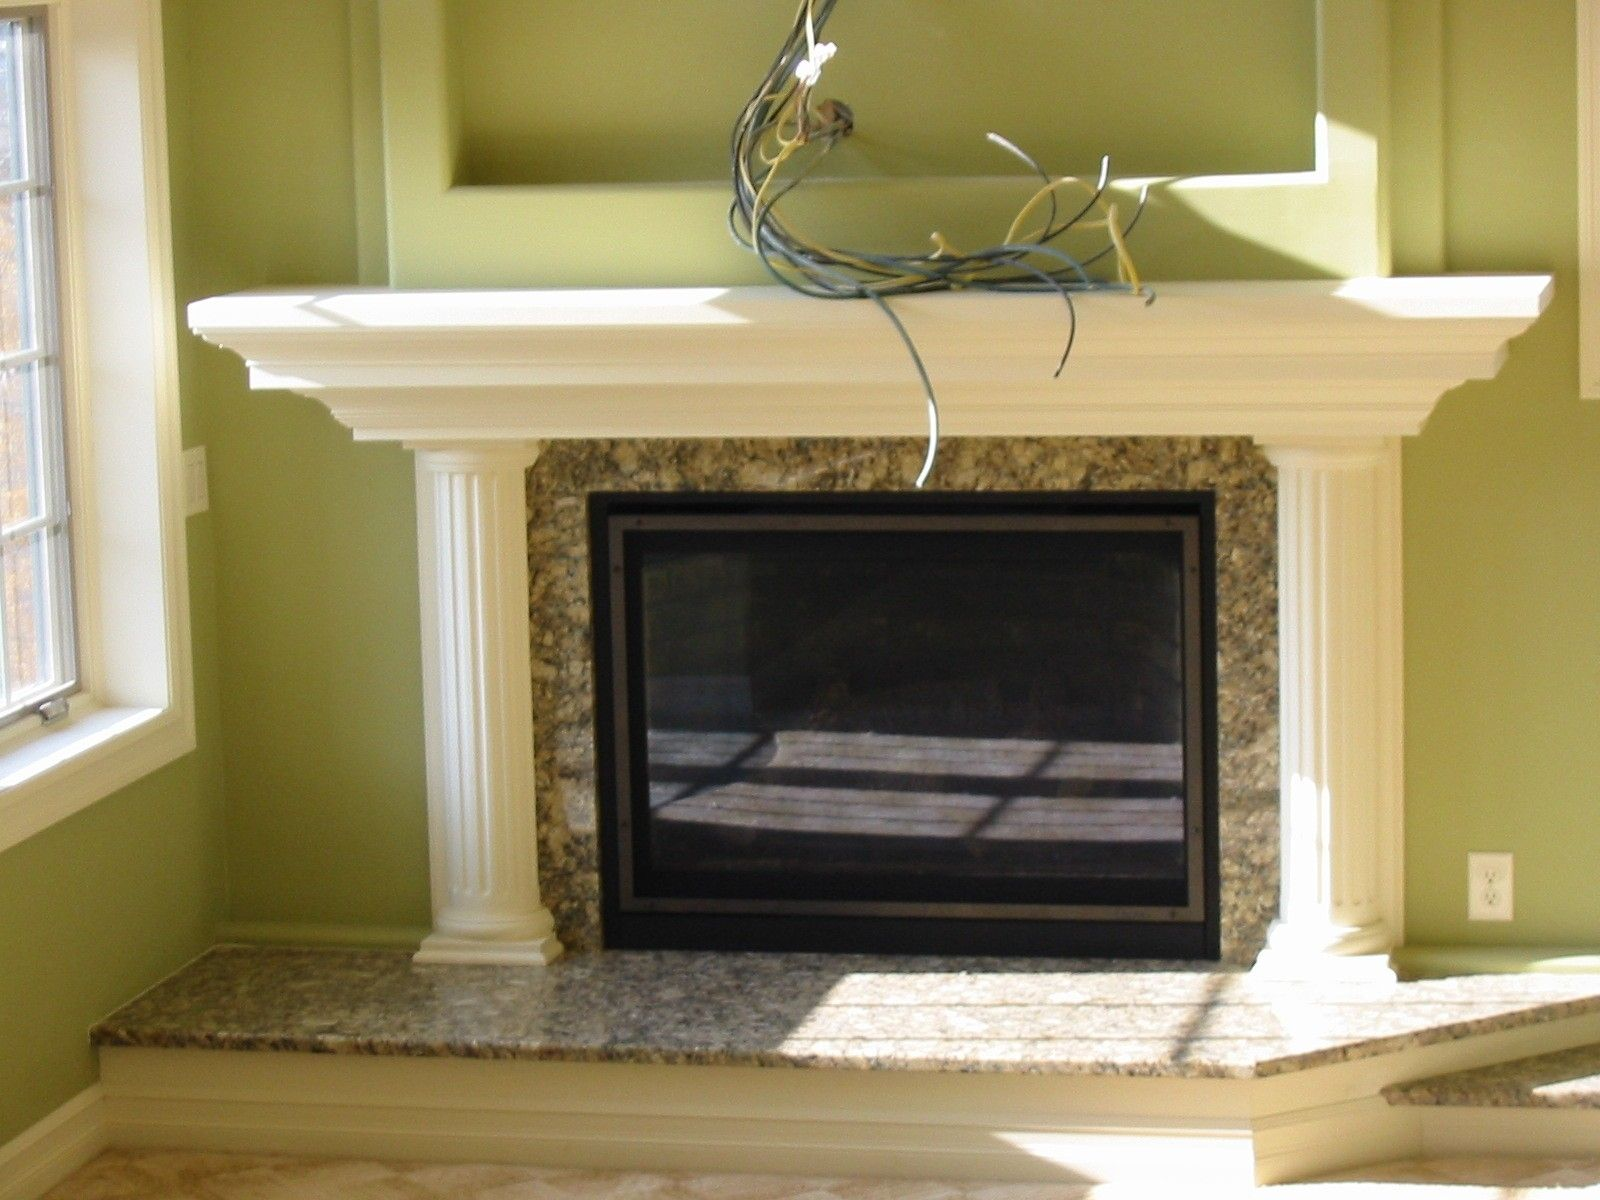 Custom Made Custom Fire Place Mantle Like The Mantel The Columns Not So Much Fireplace Fireplace Mantels Mantle